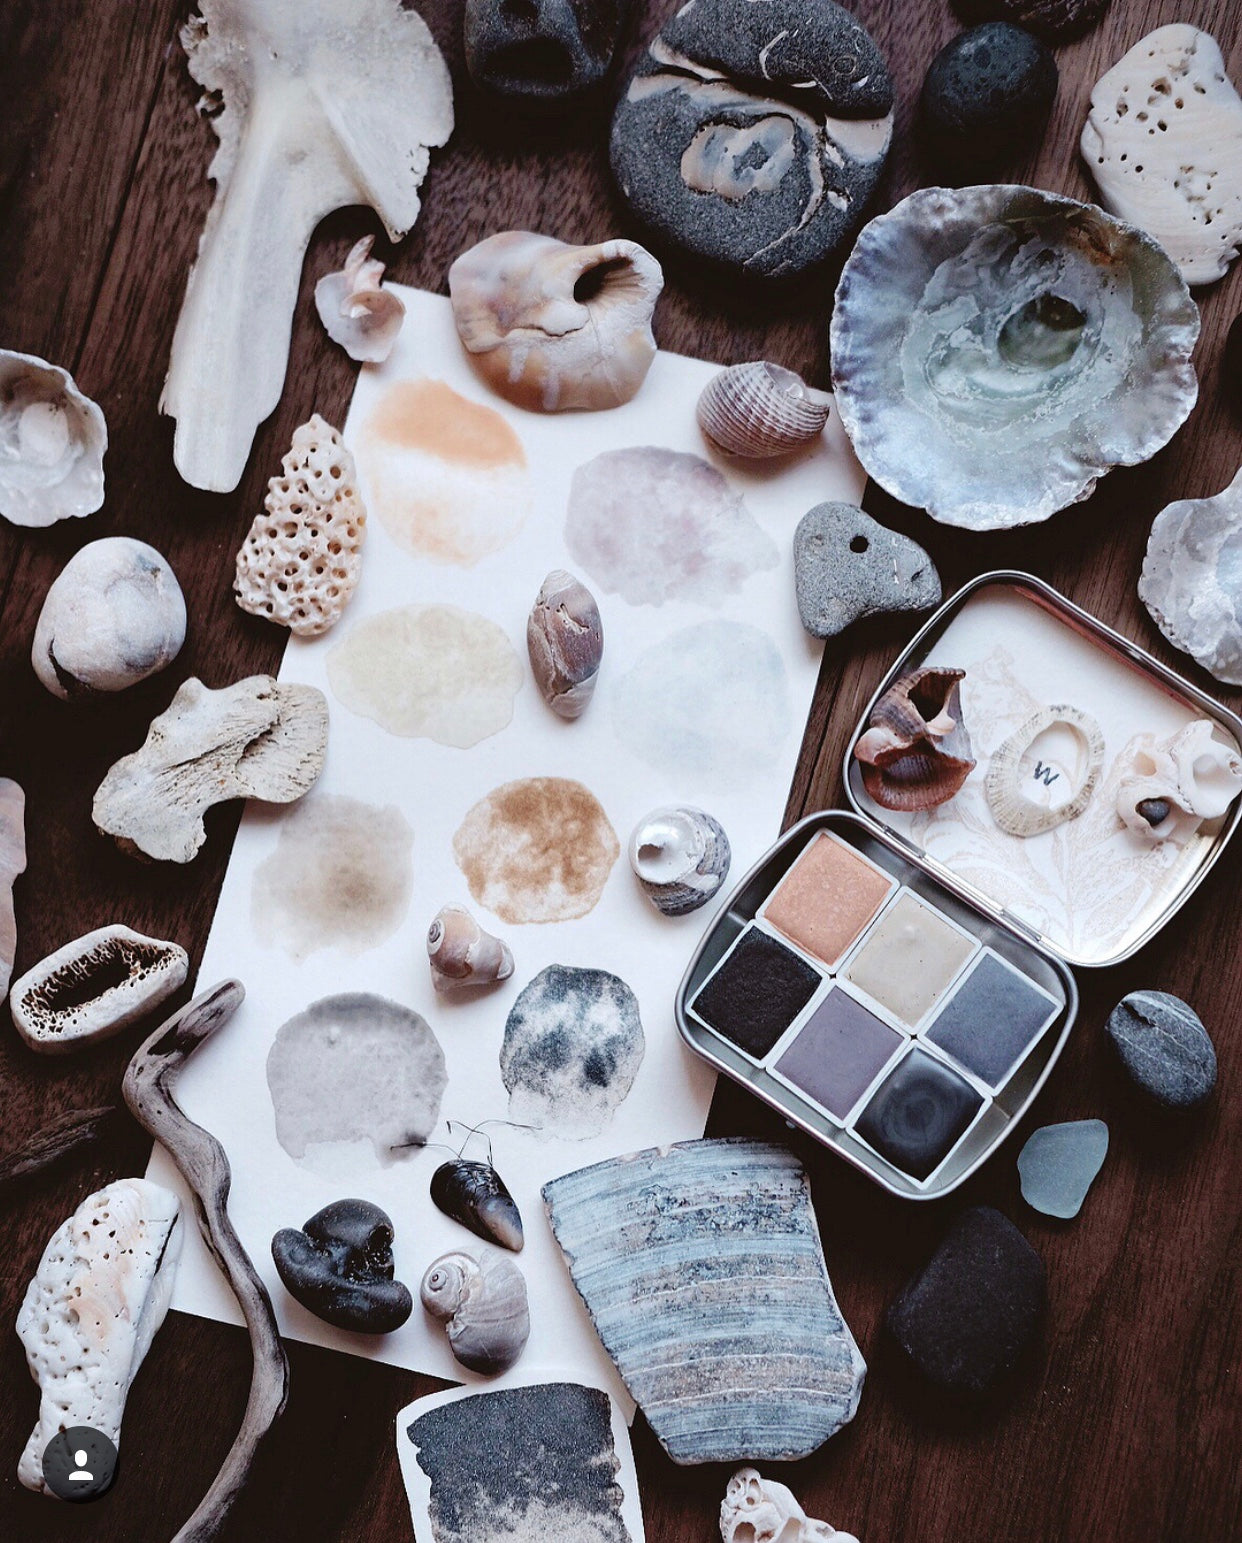 Seashell Beachcombing - Limited edition Gemstone Mineral watercolor palette